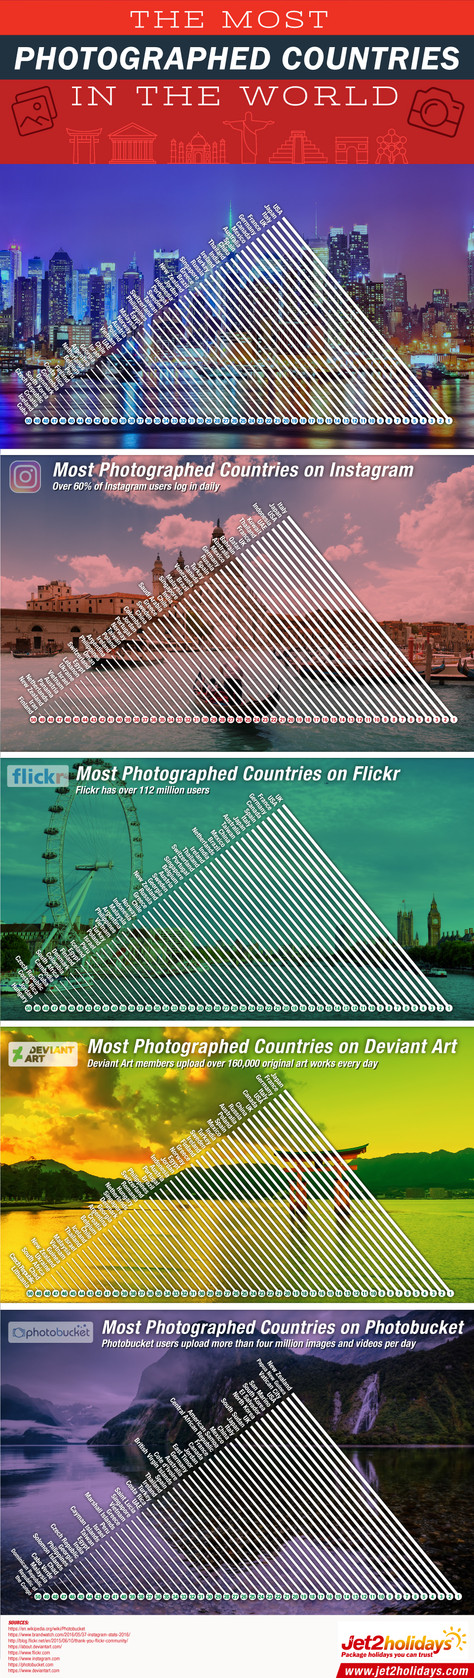 The Most Photographed Countries in The World